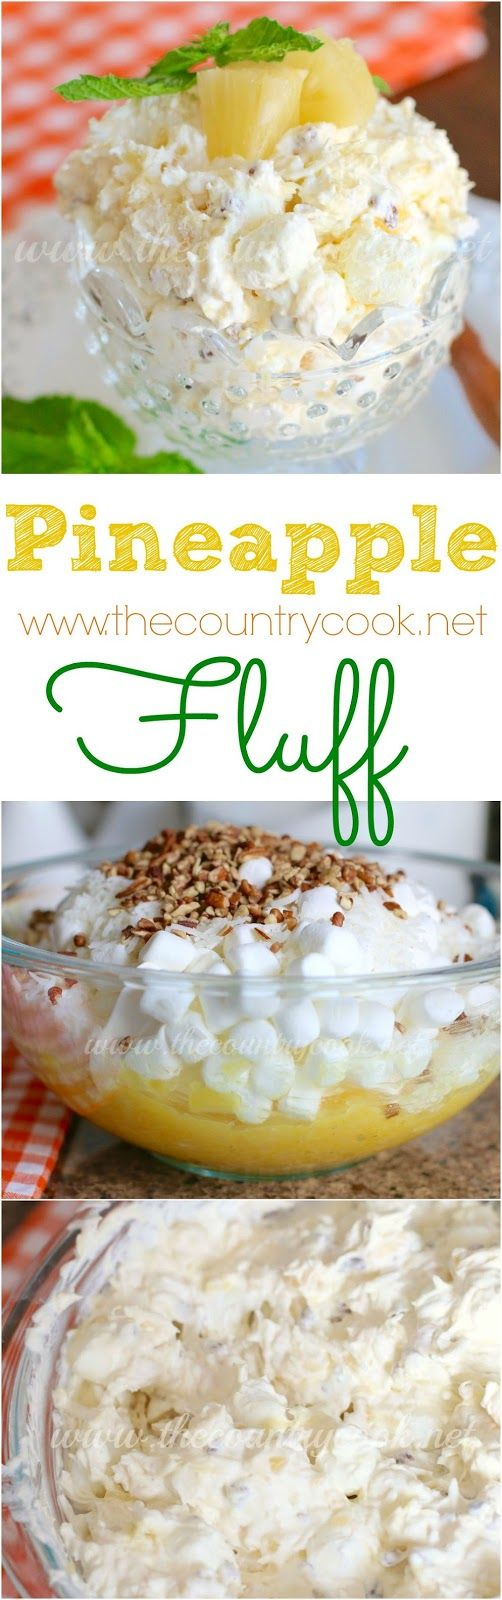 The Country Cook: Pineapple Fluff